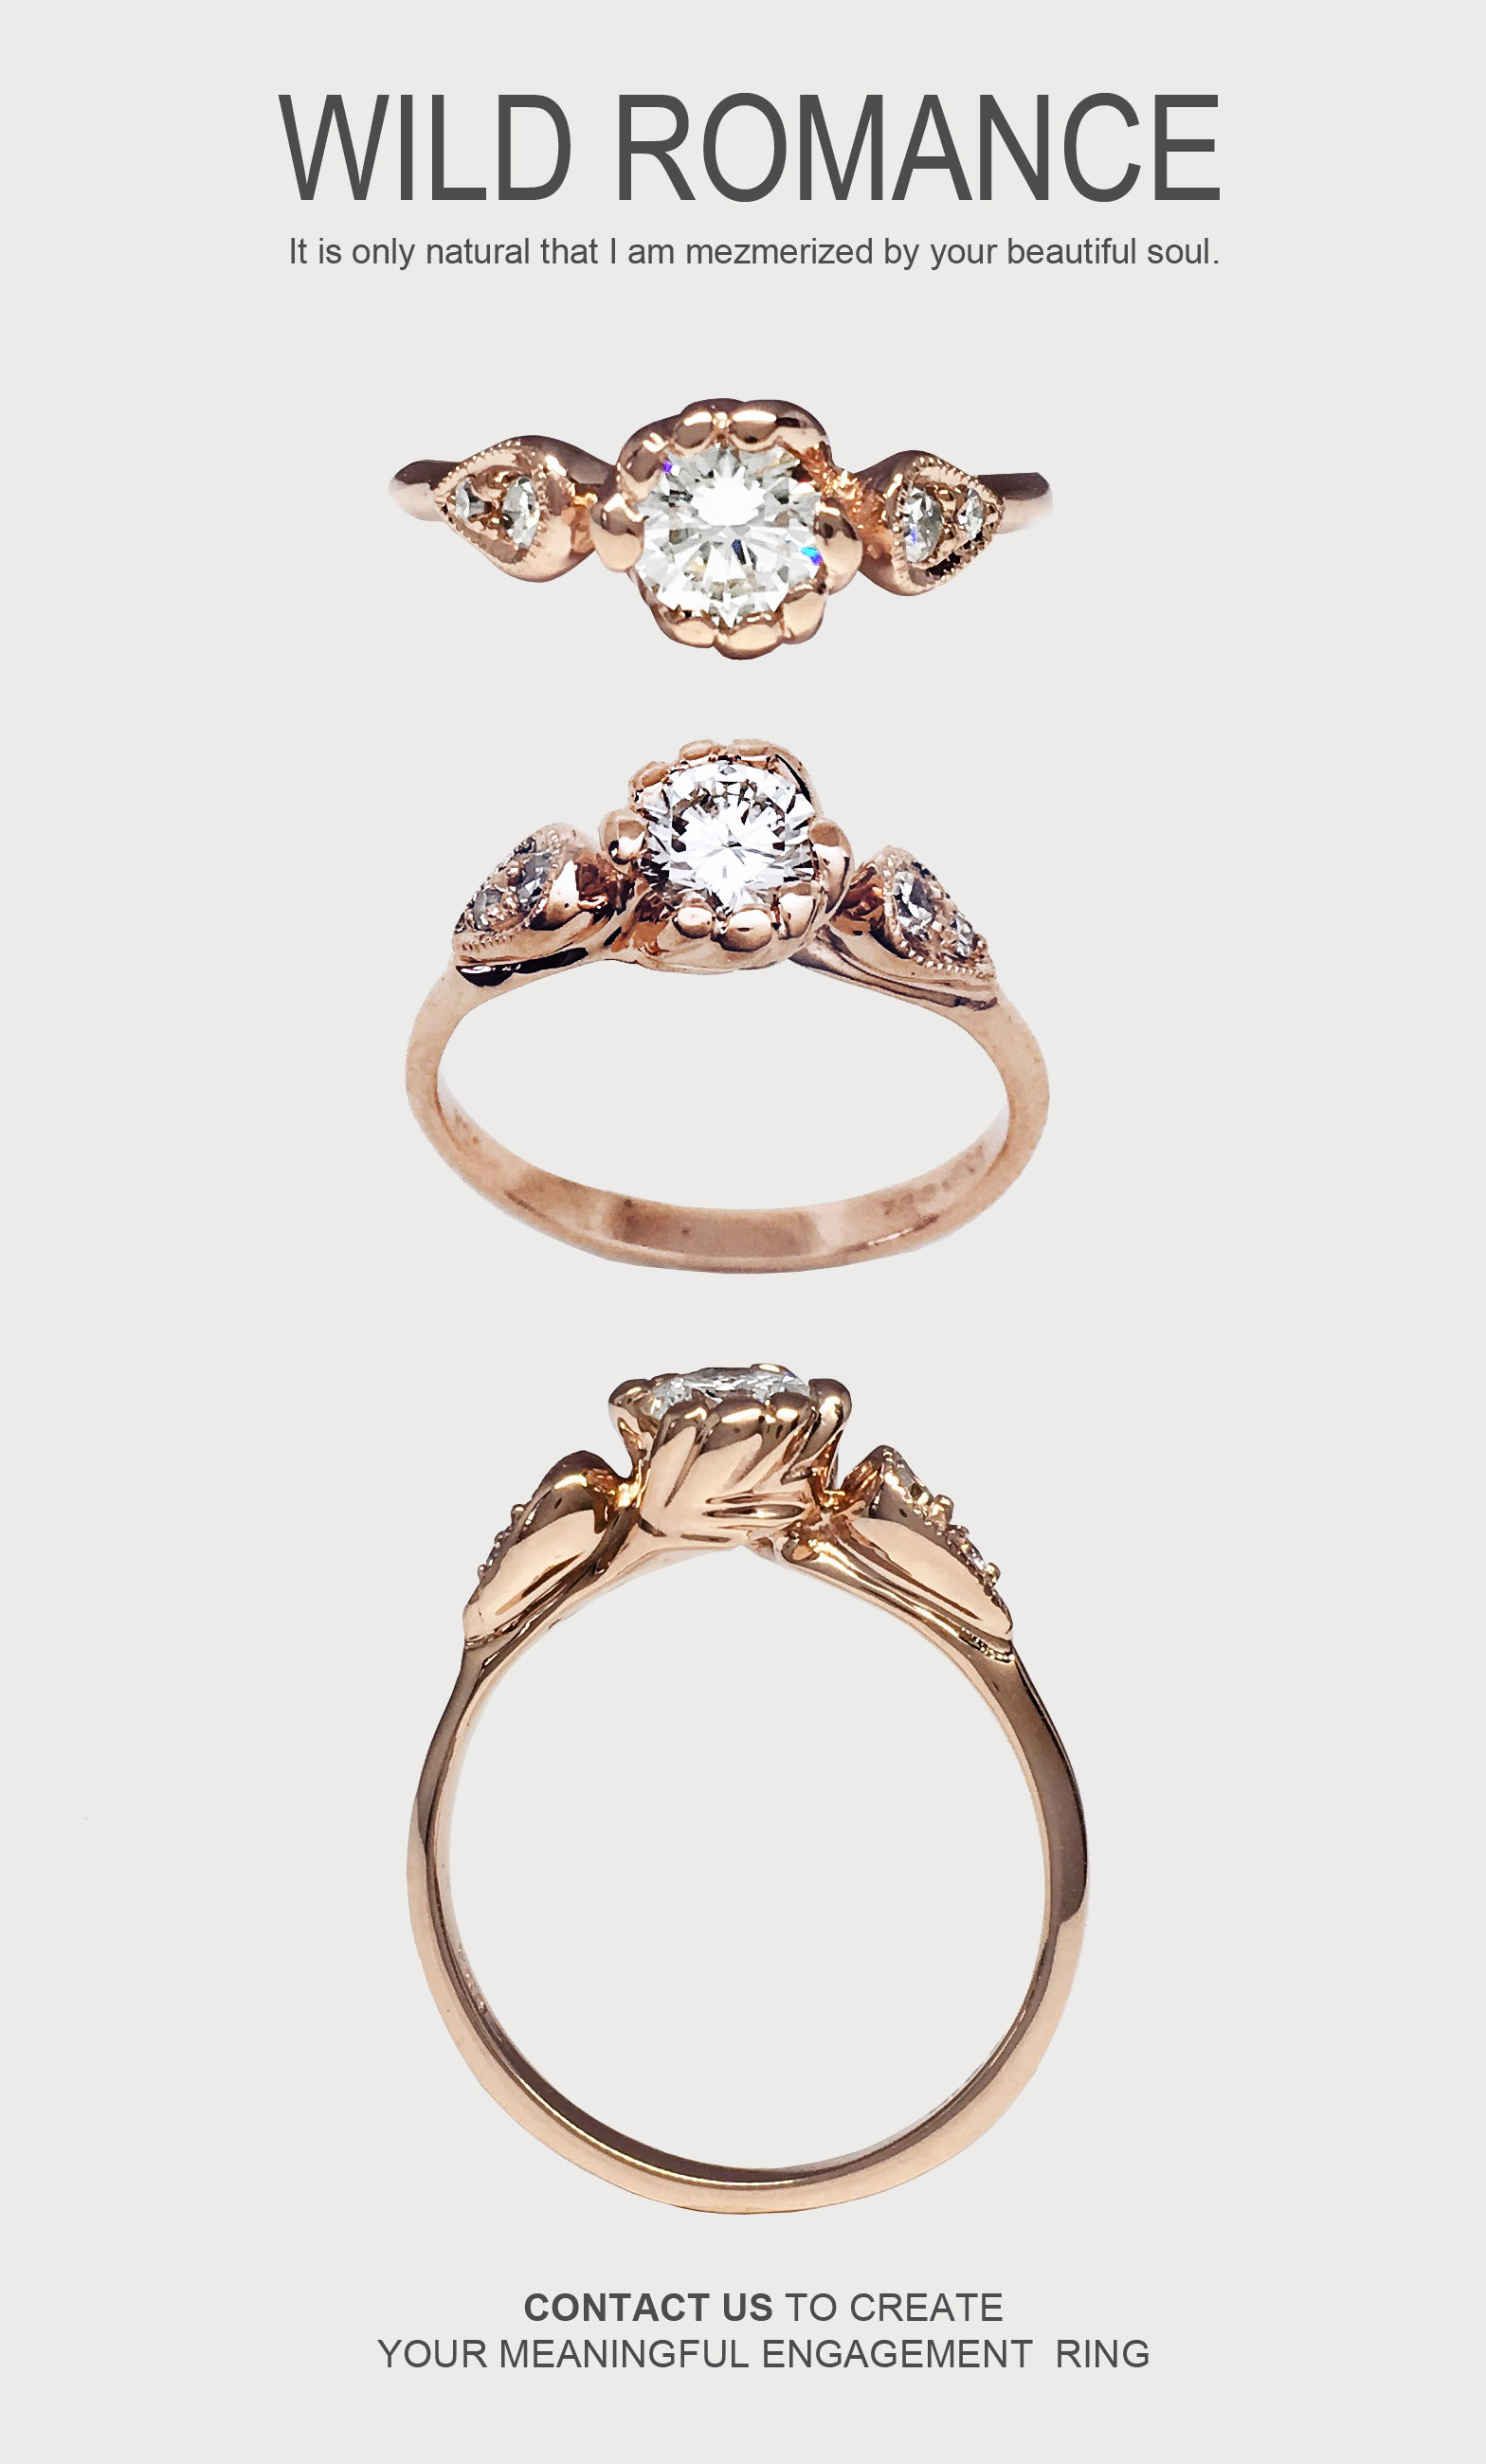 deco engagement diamond and inspired gold rare art no unique white katherine flowers ring wedding round products carat edwardian rings branches nature flower